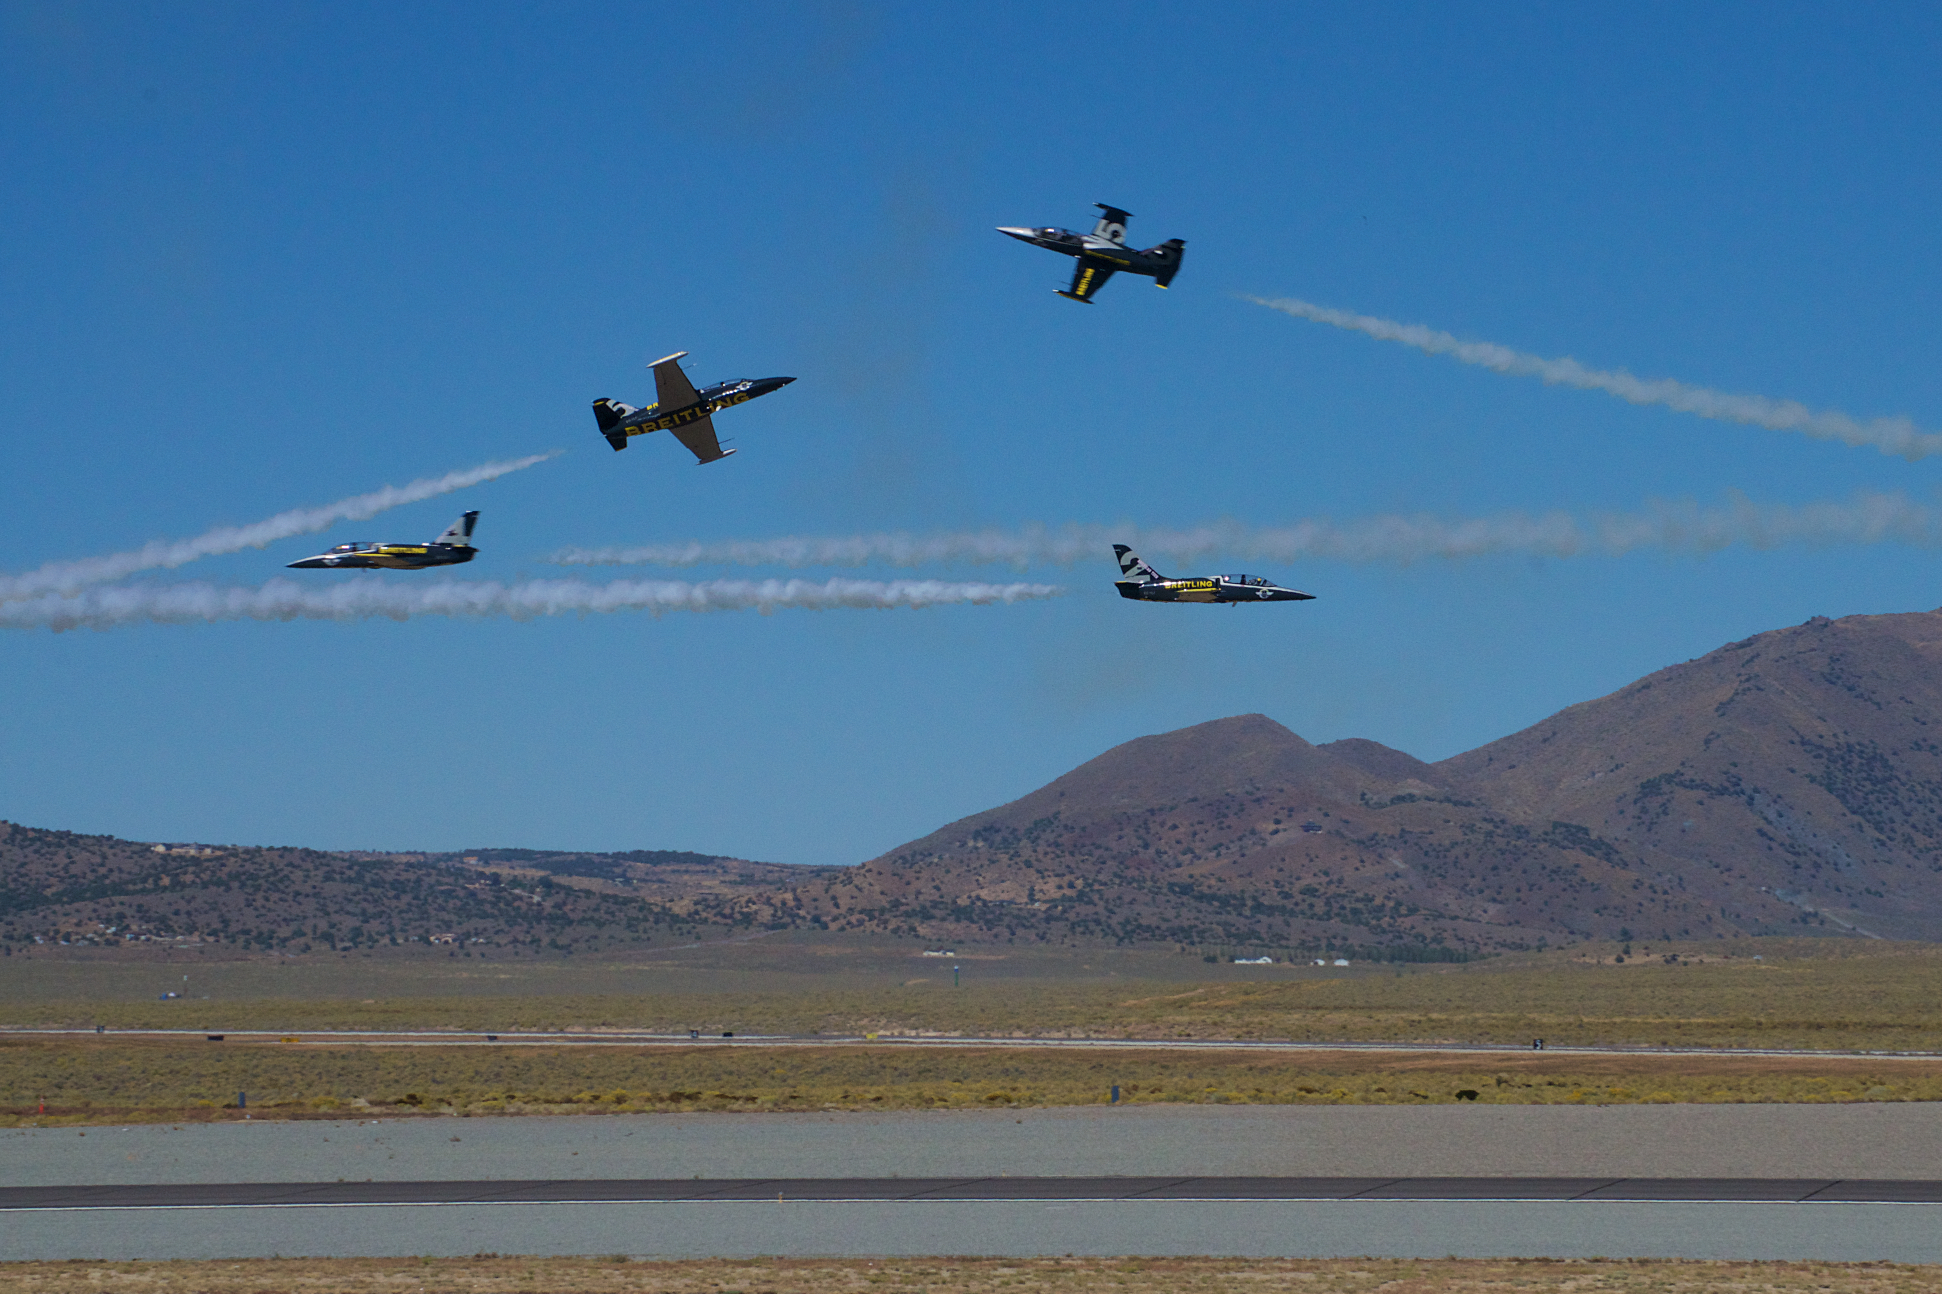 Breitling Jet Team, Reno Stead Airport, National Championship Air Races 2015